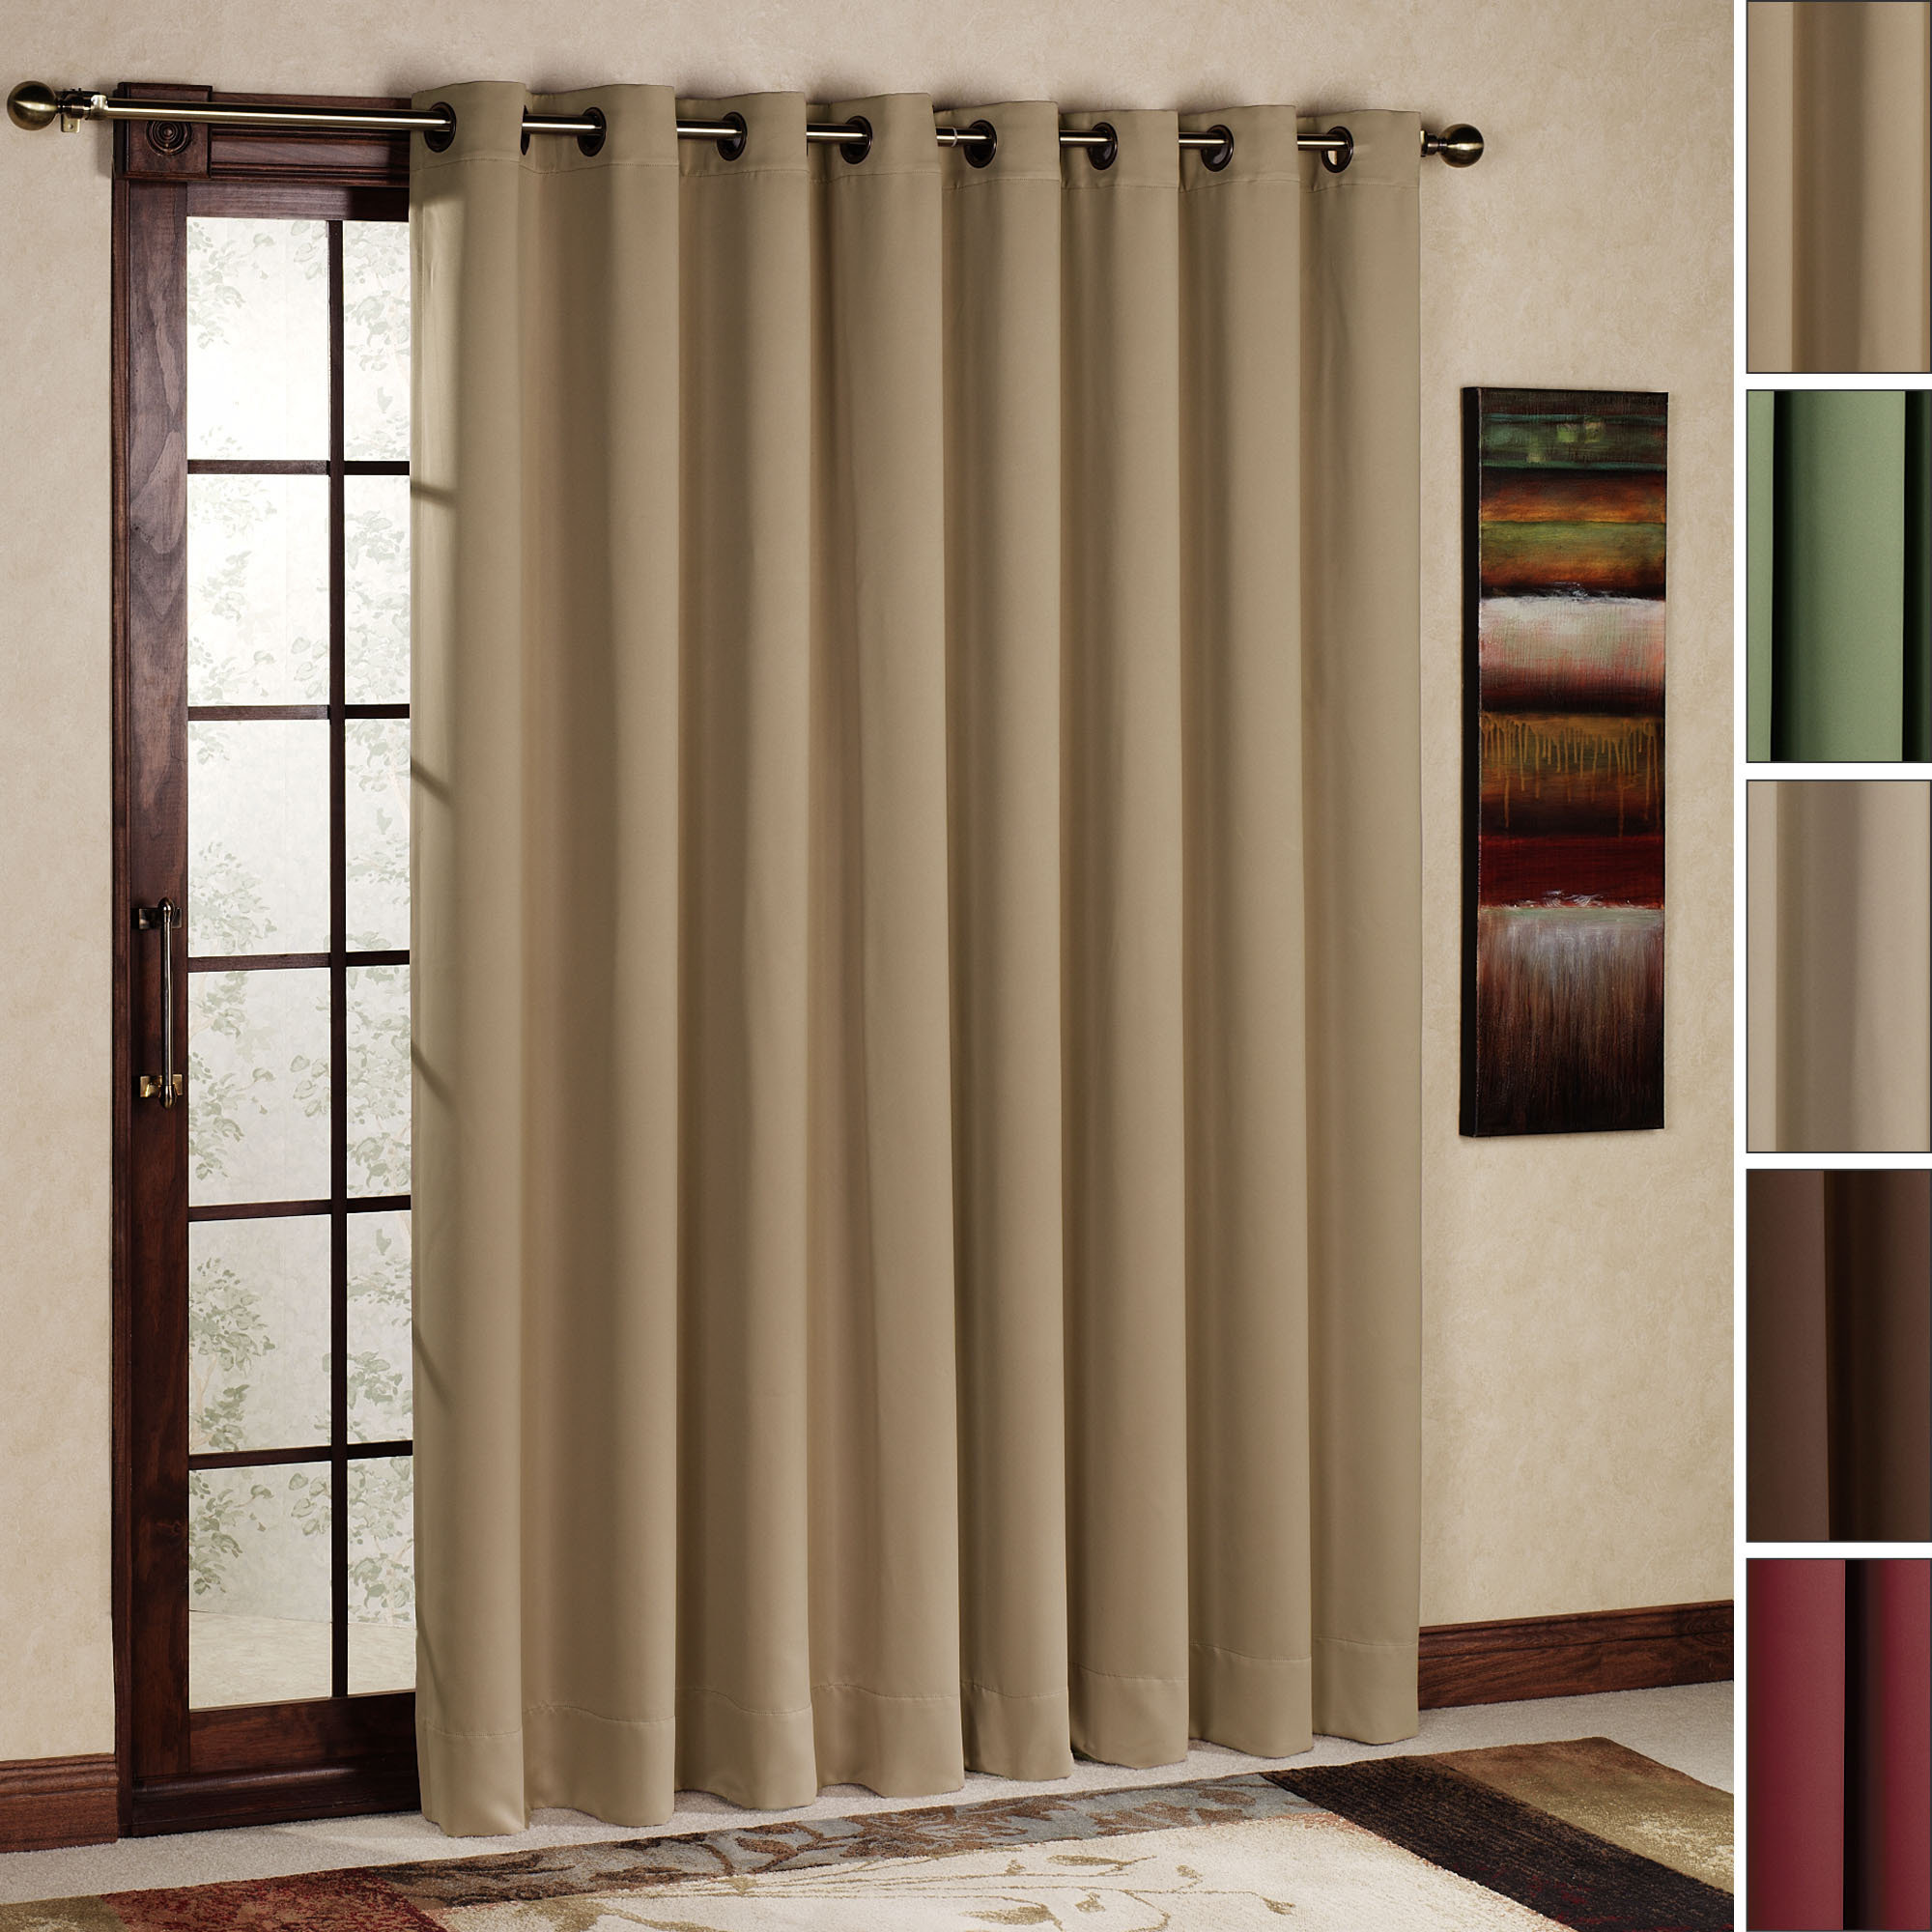 patio door curtain ideas | homesfeed - Patio Window Curtain Ideas